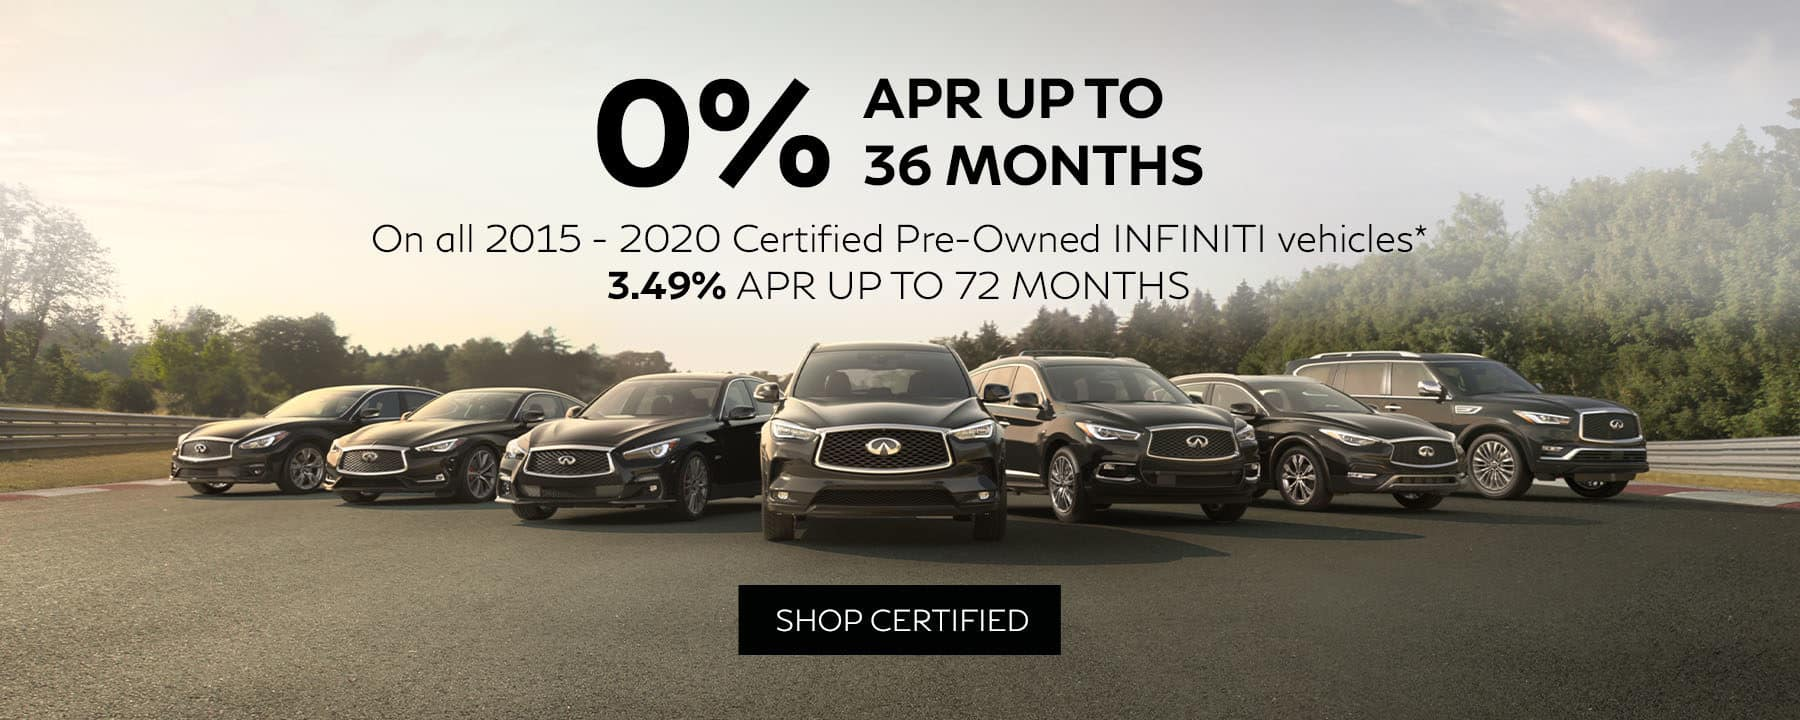 Finance any 2015 to 2020 Certified Pre-Owned INFINITI with 0% APR for 36 months or 3.49% up to 72 months.